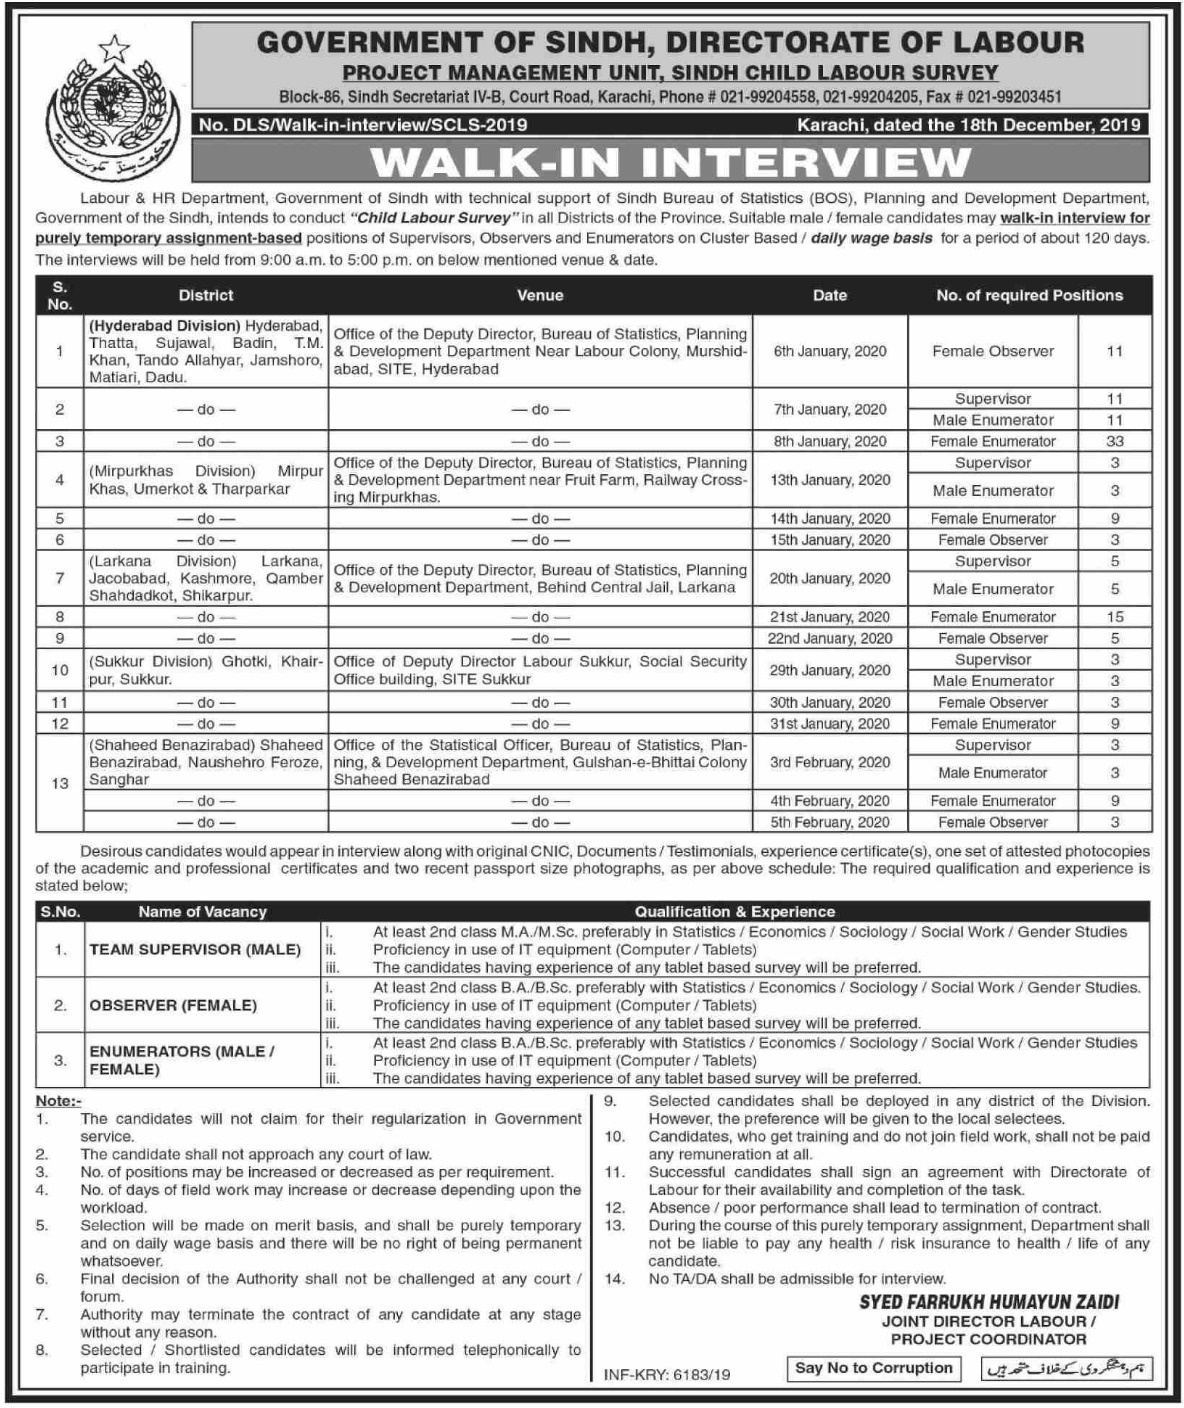 Labour & HR Department Government of Sindh Jobs 2019